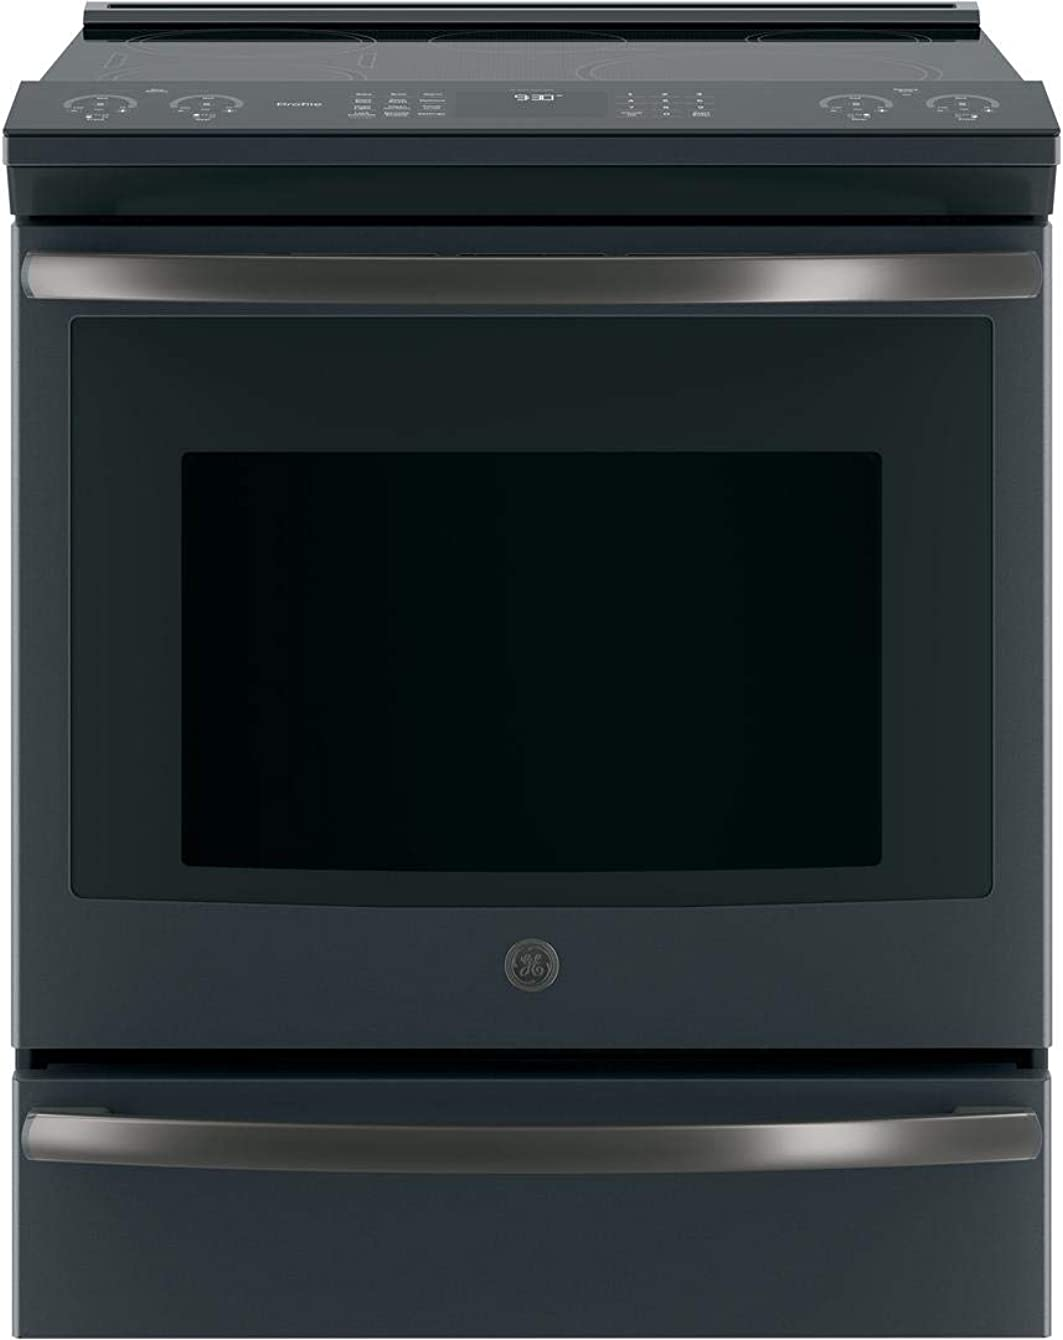 GE PHS930FLDS Electric Range with Smoothtop Cooktop